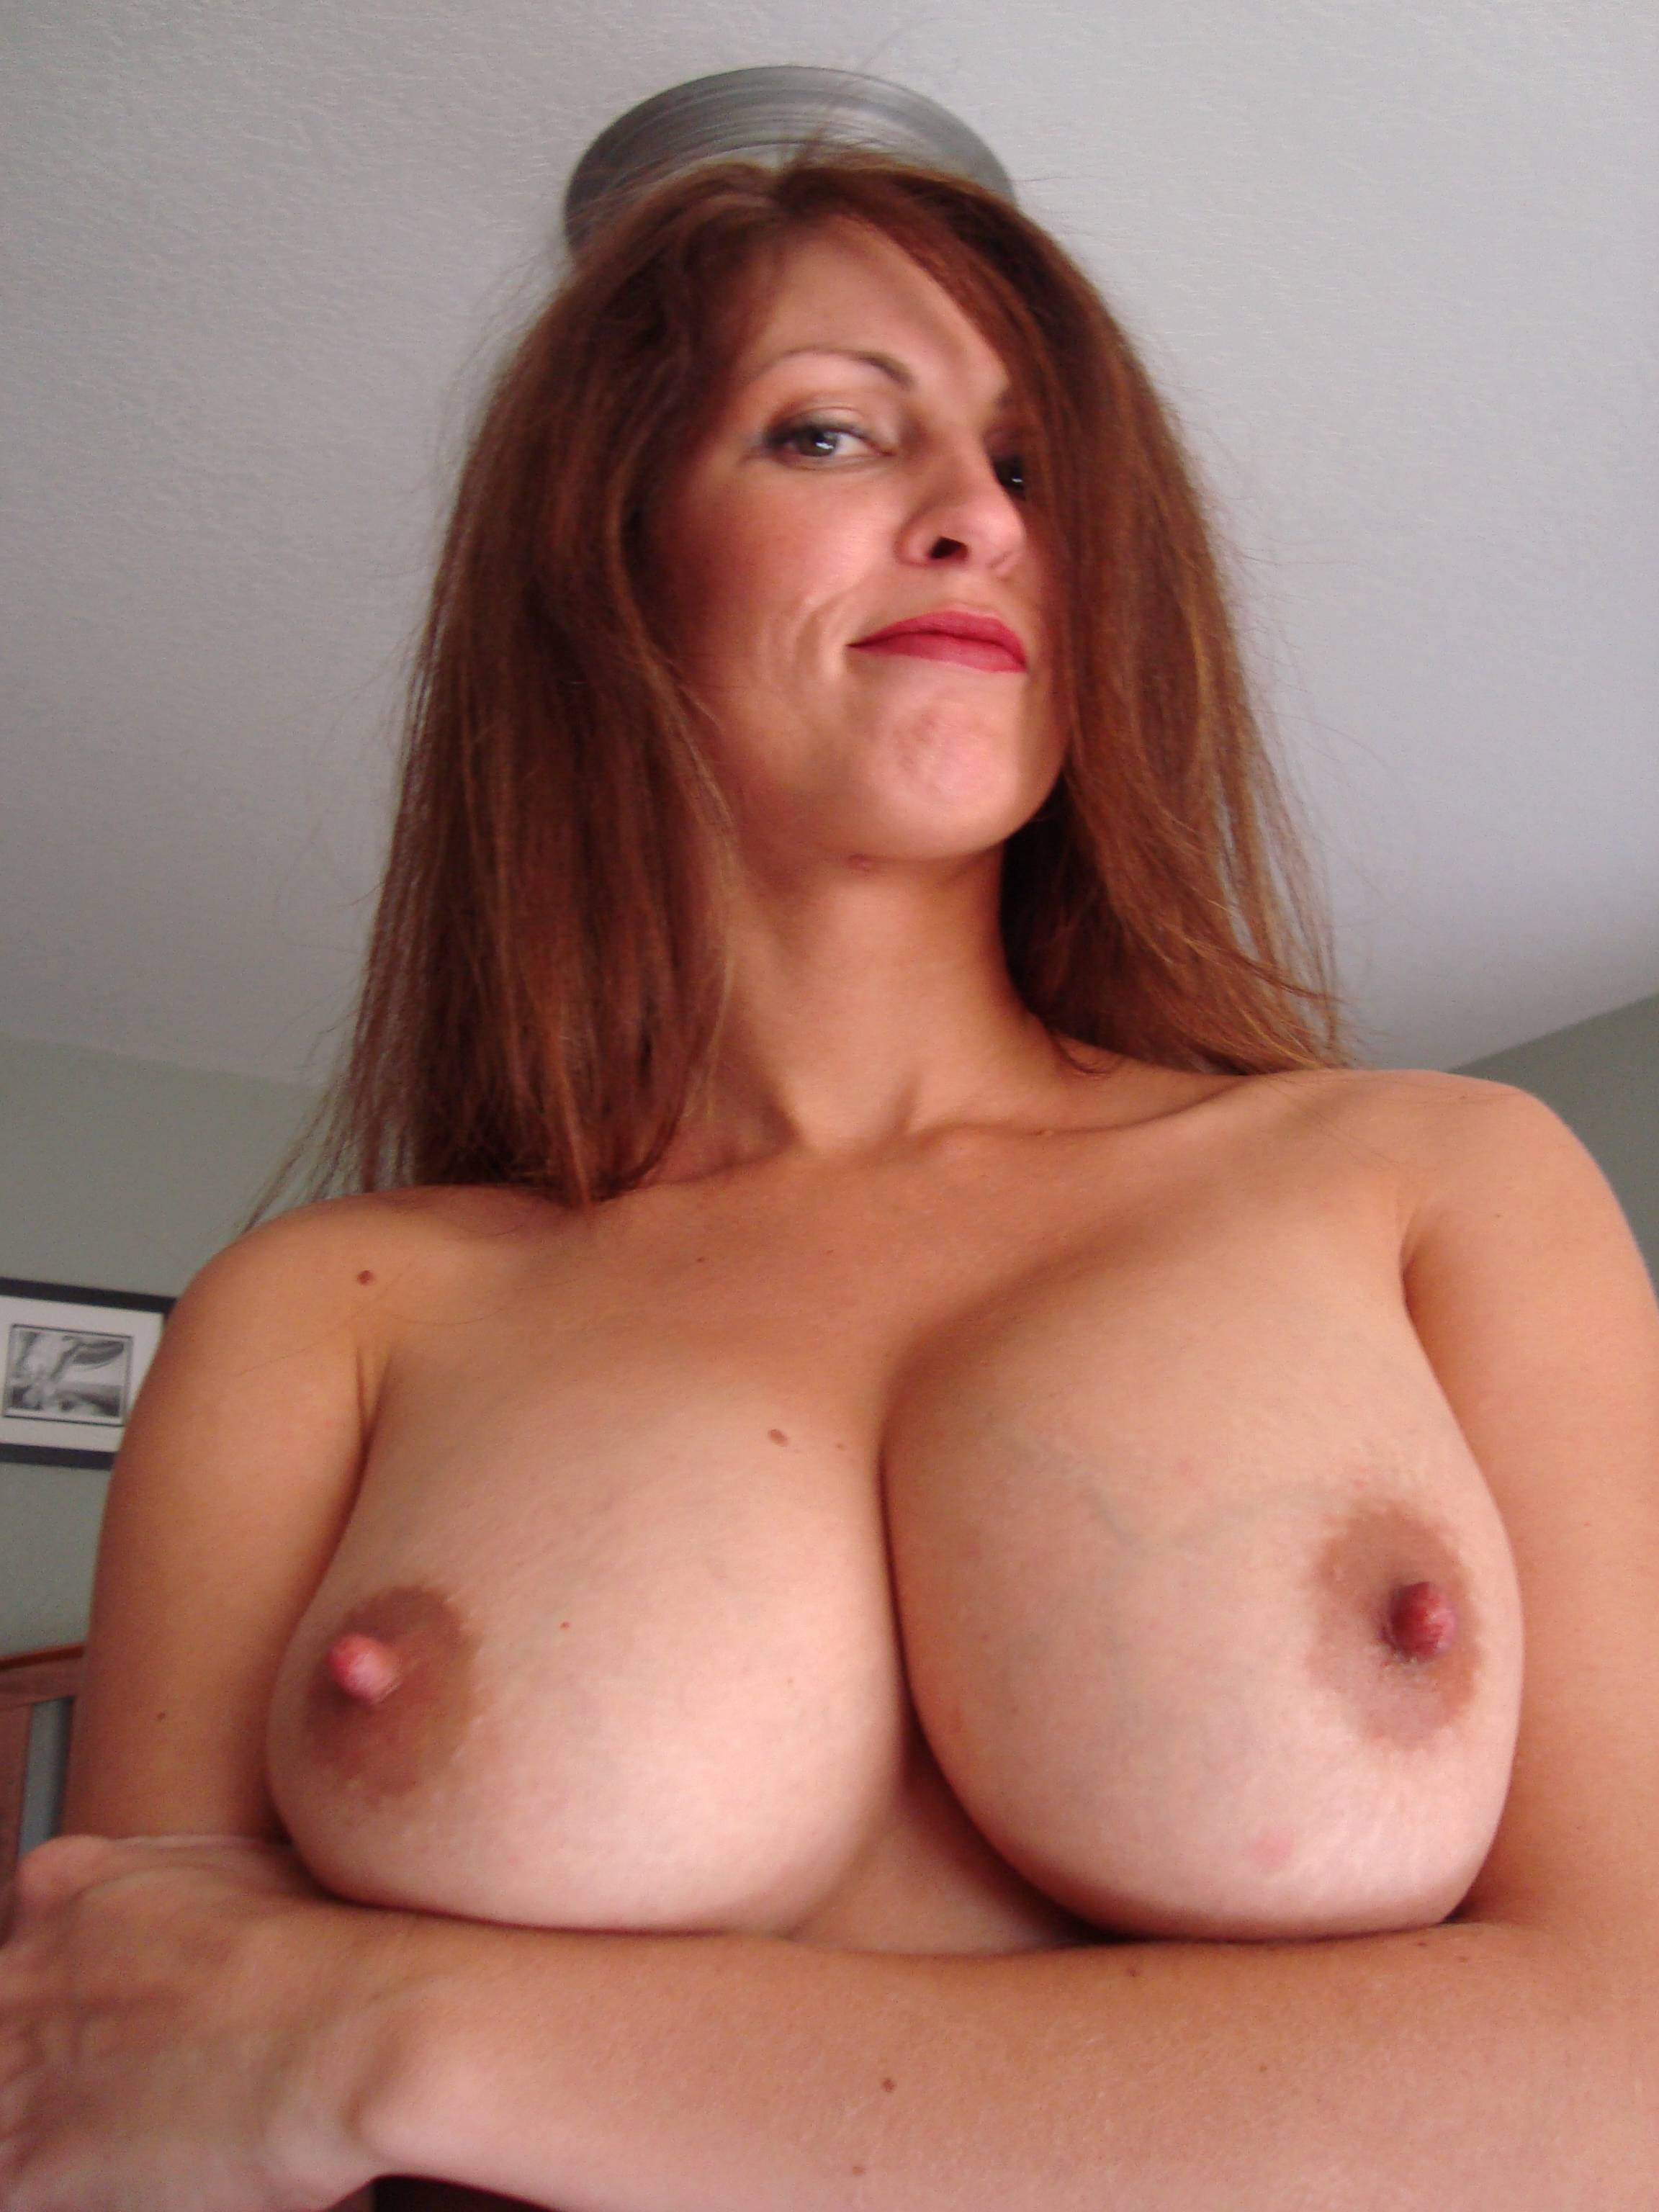 Perhaps shall big natural tits mature women remarkable, useful